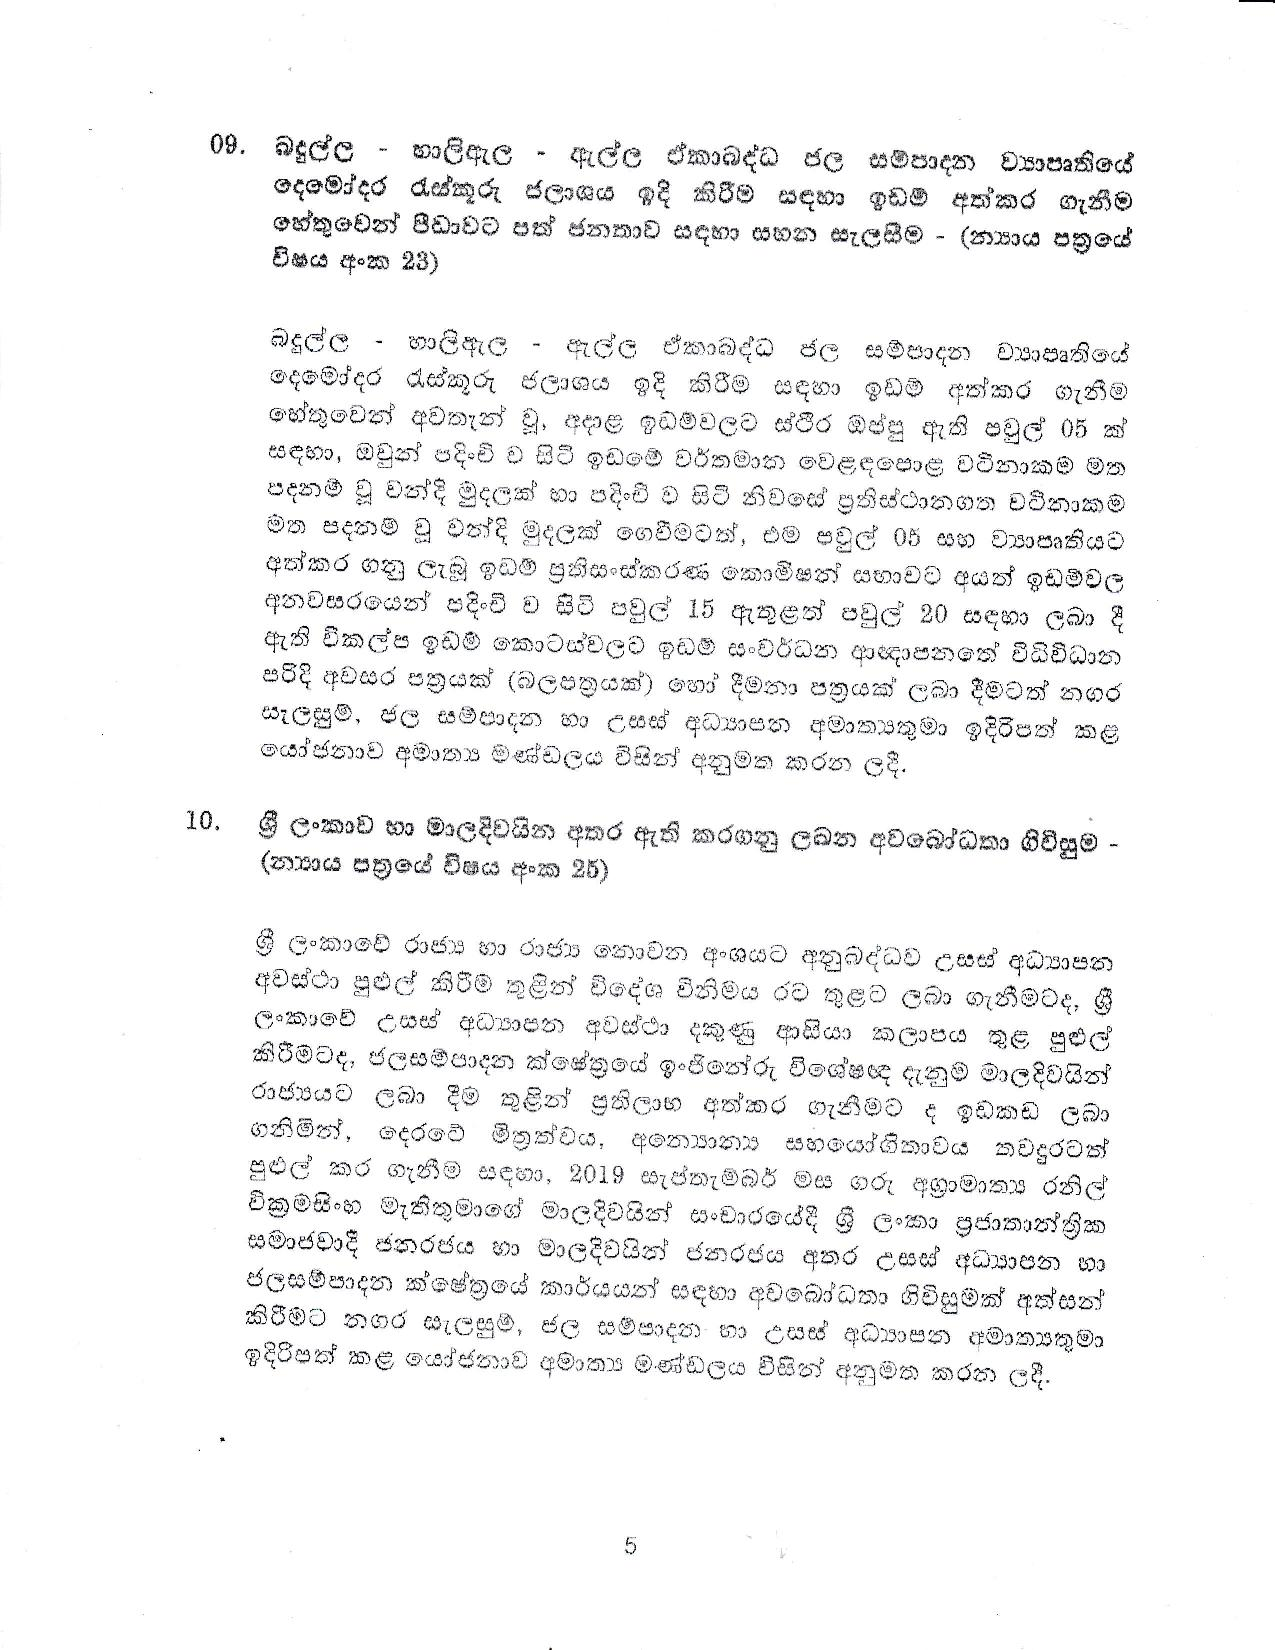 Cabinet Decision 27.08.2019 page 005